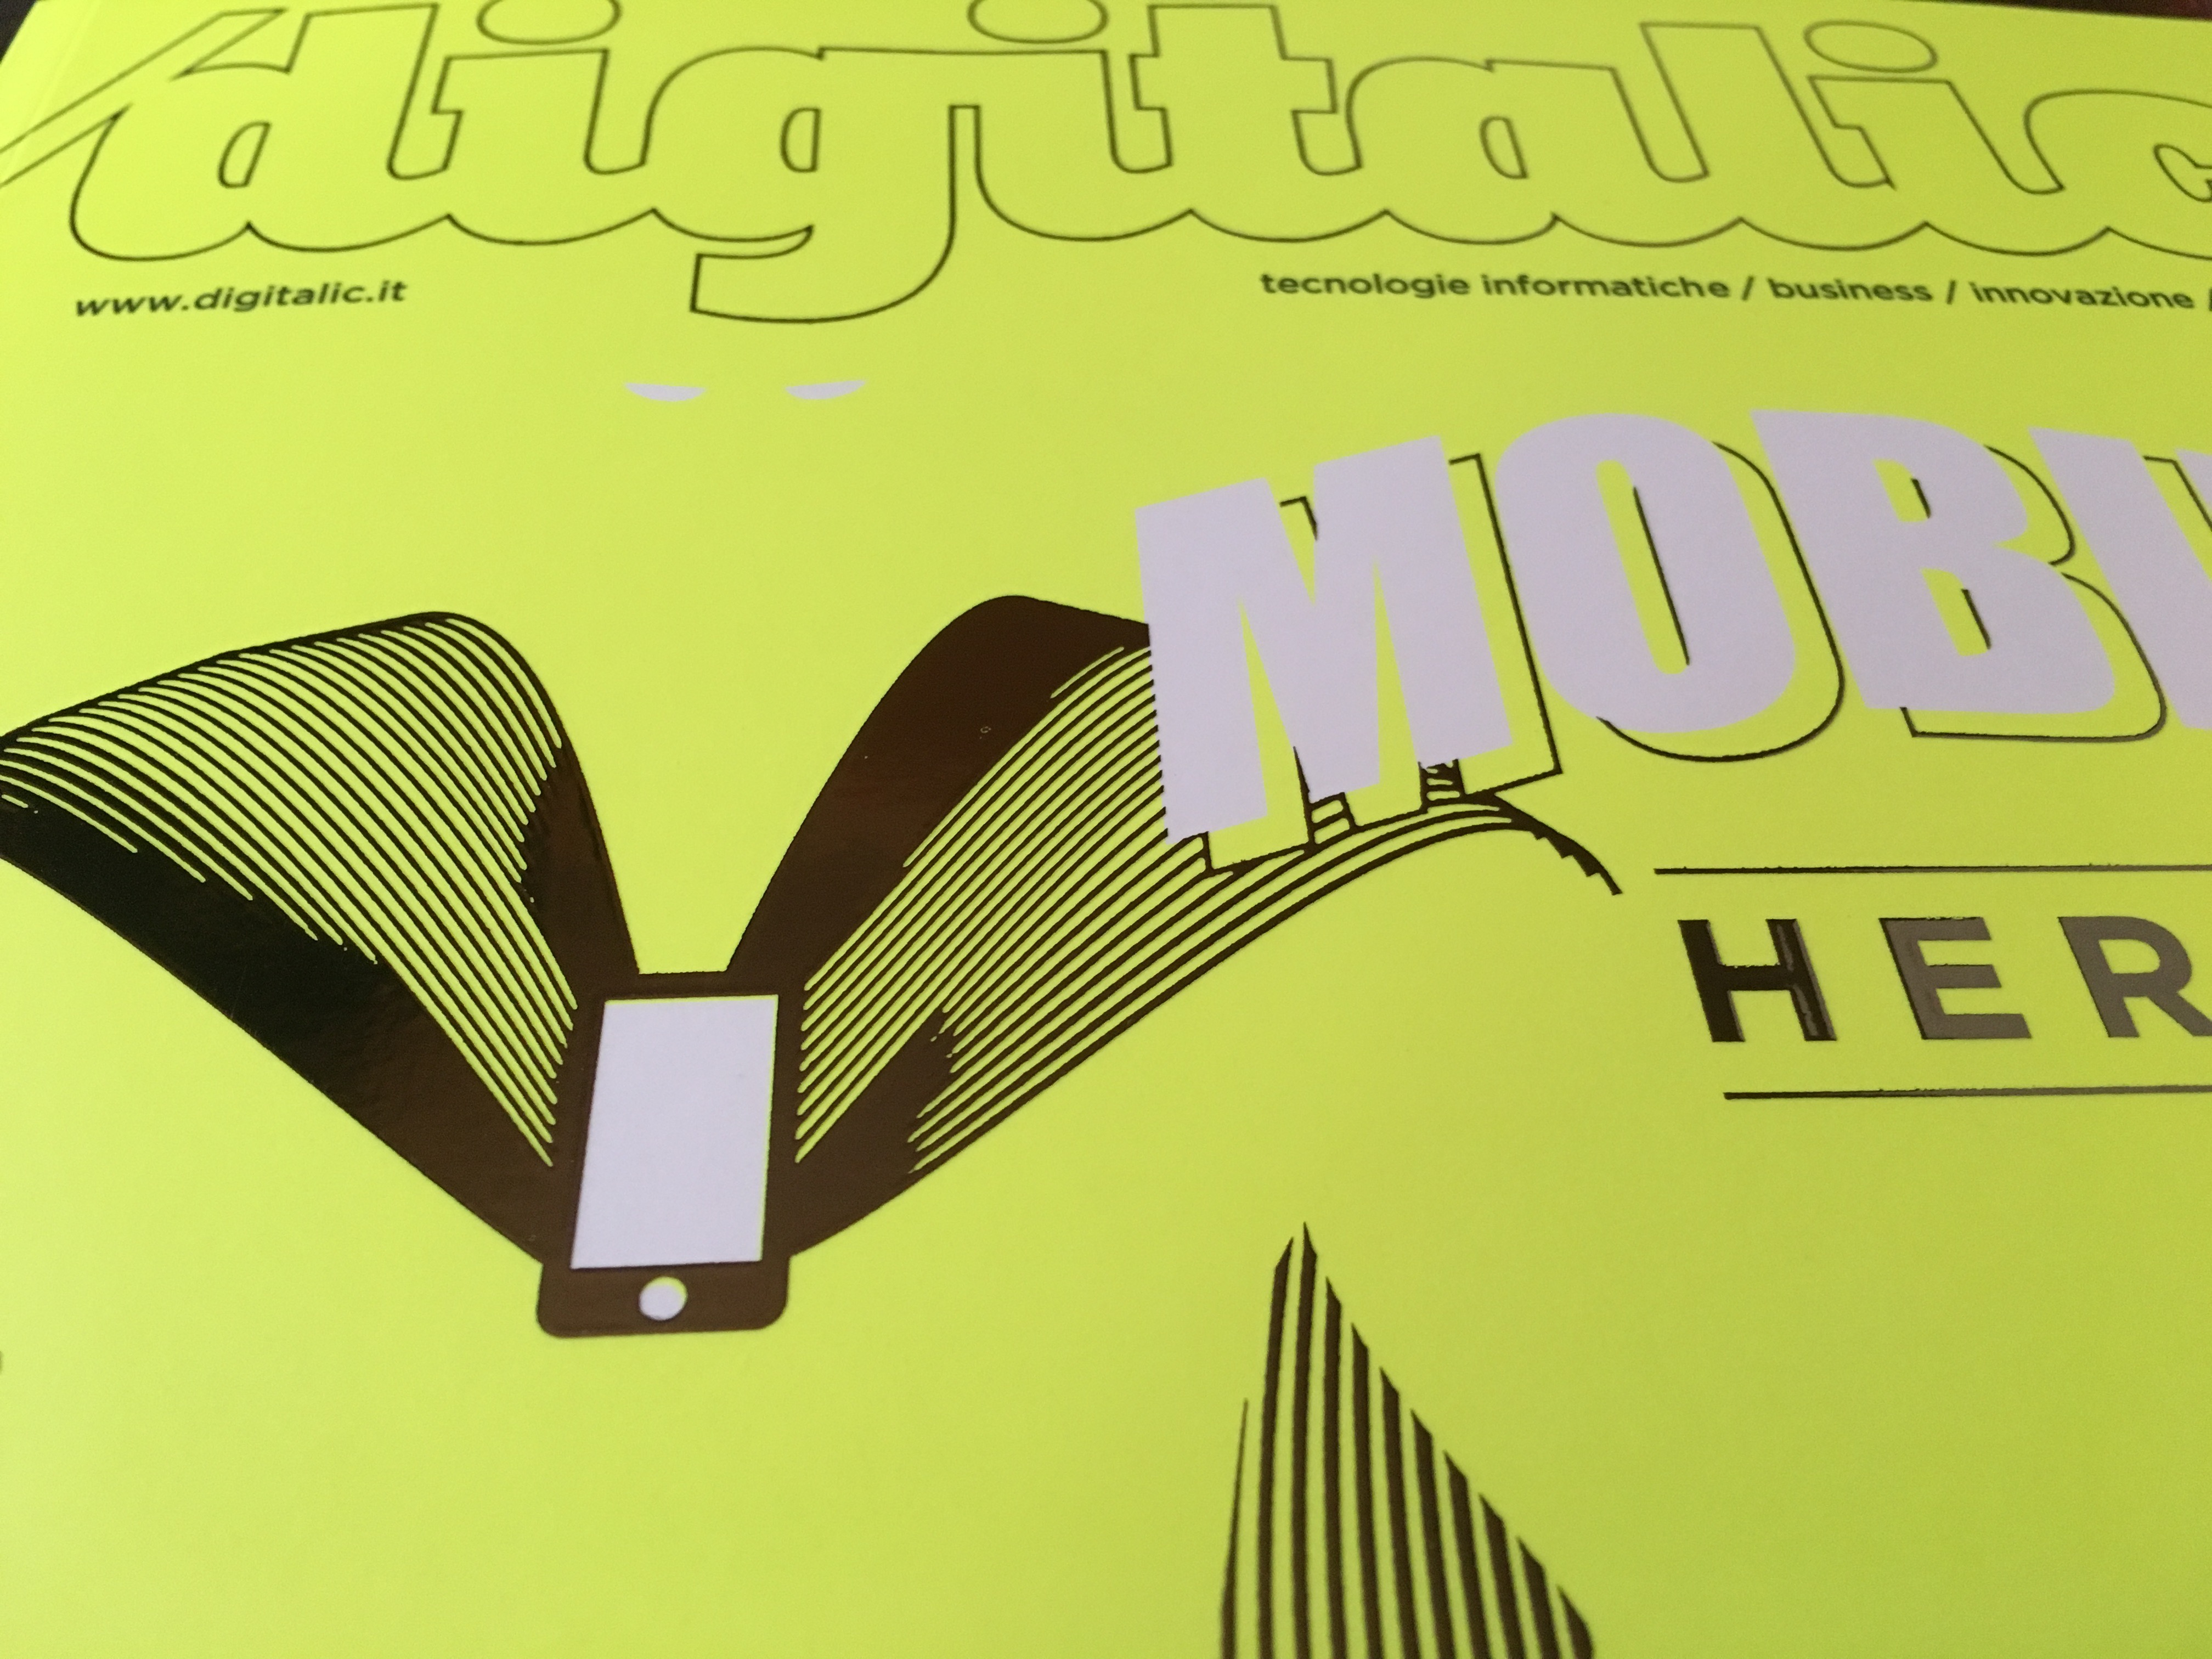 Digitalic n. 52: Mobile Hero